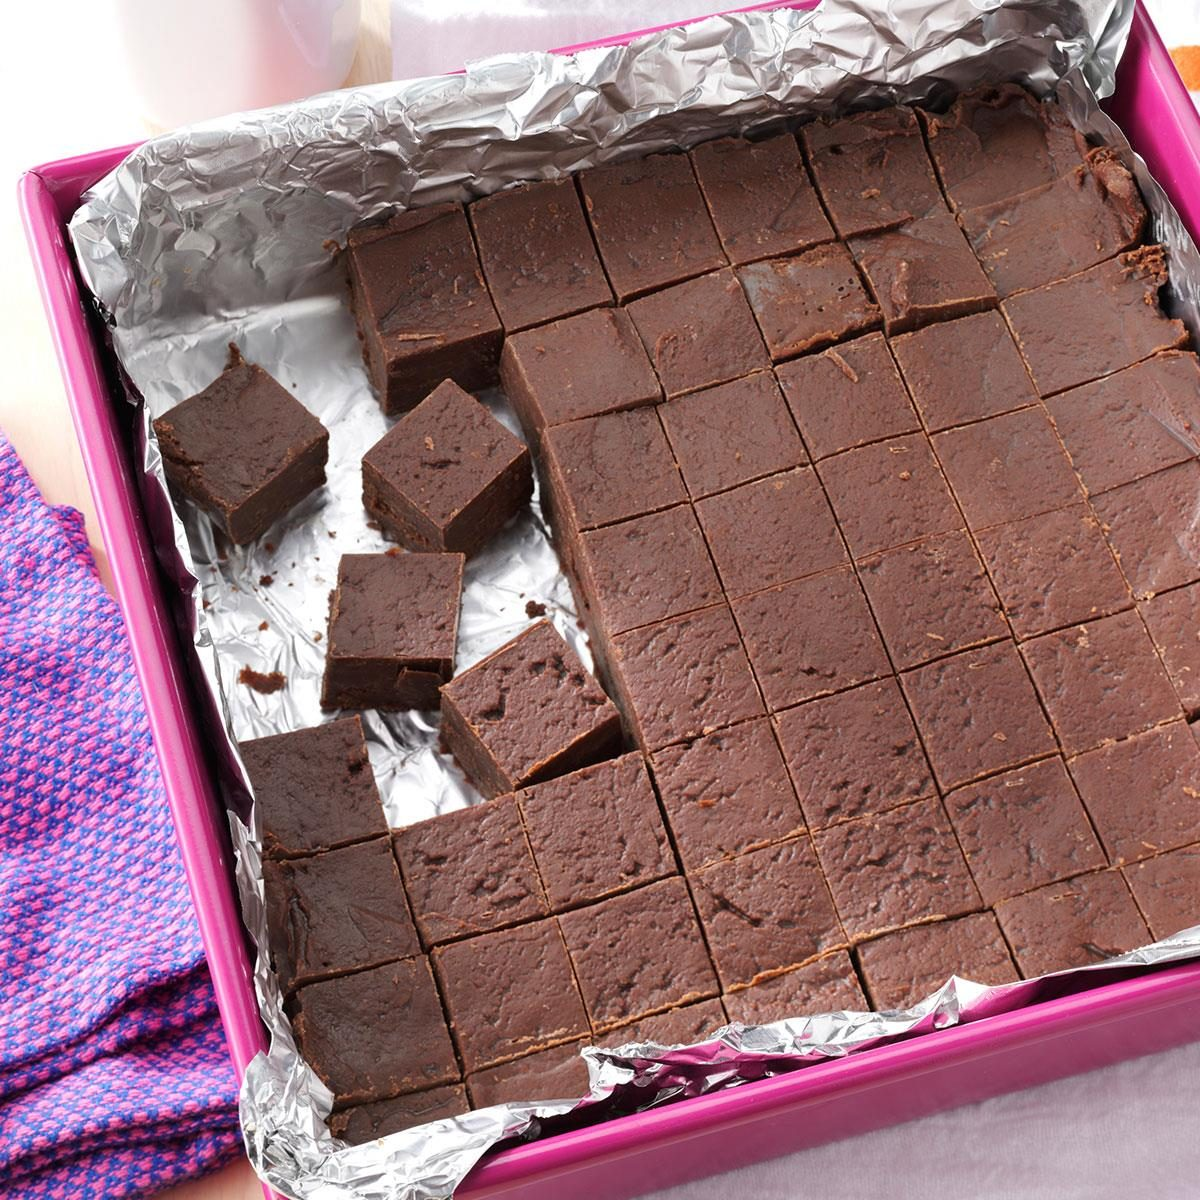 5 Ingredient Fudge Recipe How To Make It Taste Of Home